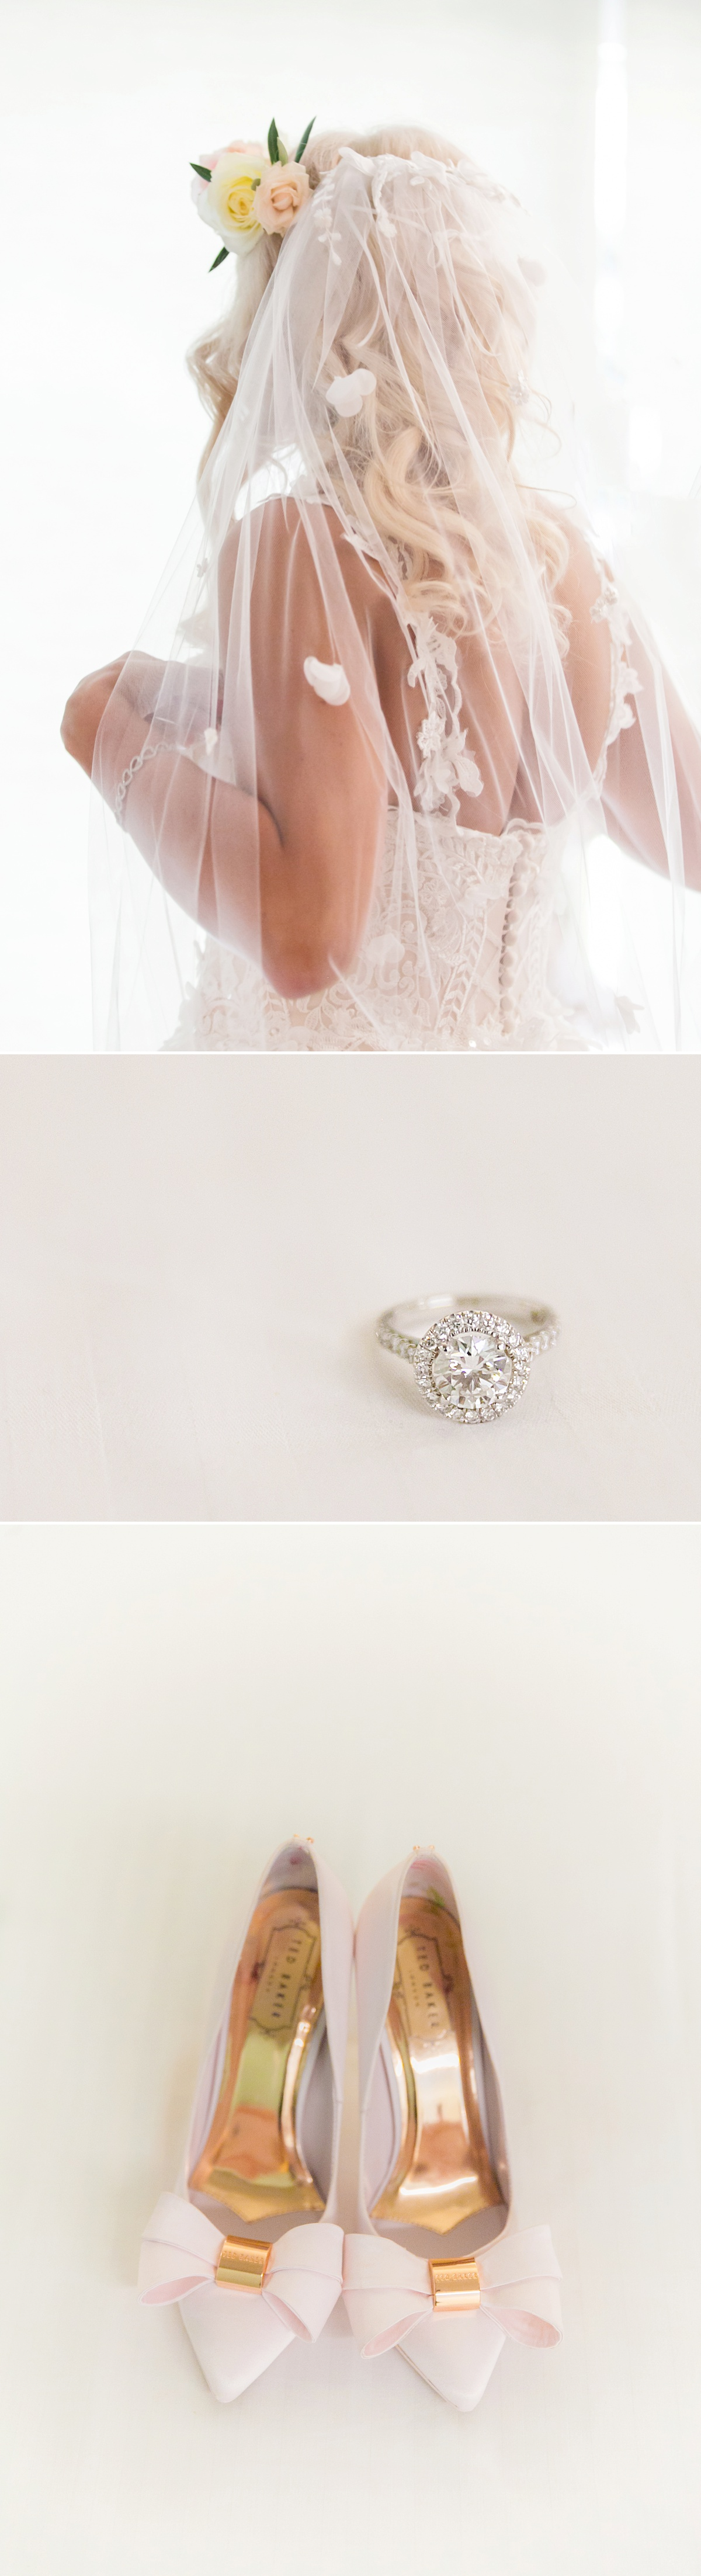 Noosa-wedding-ring